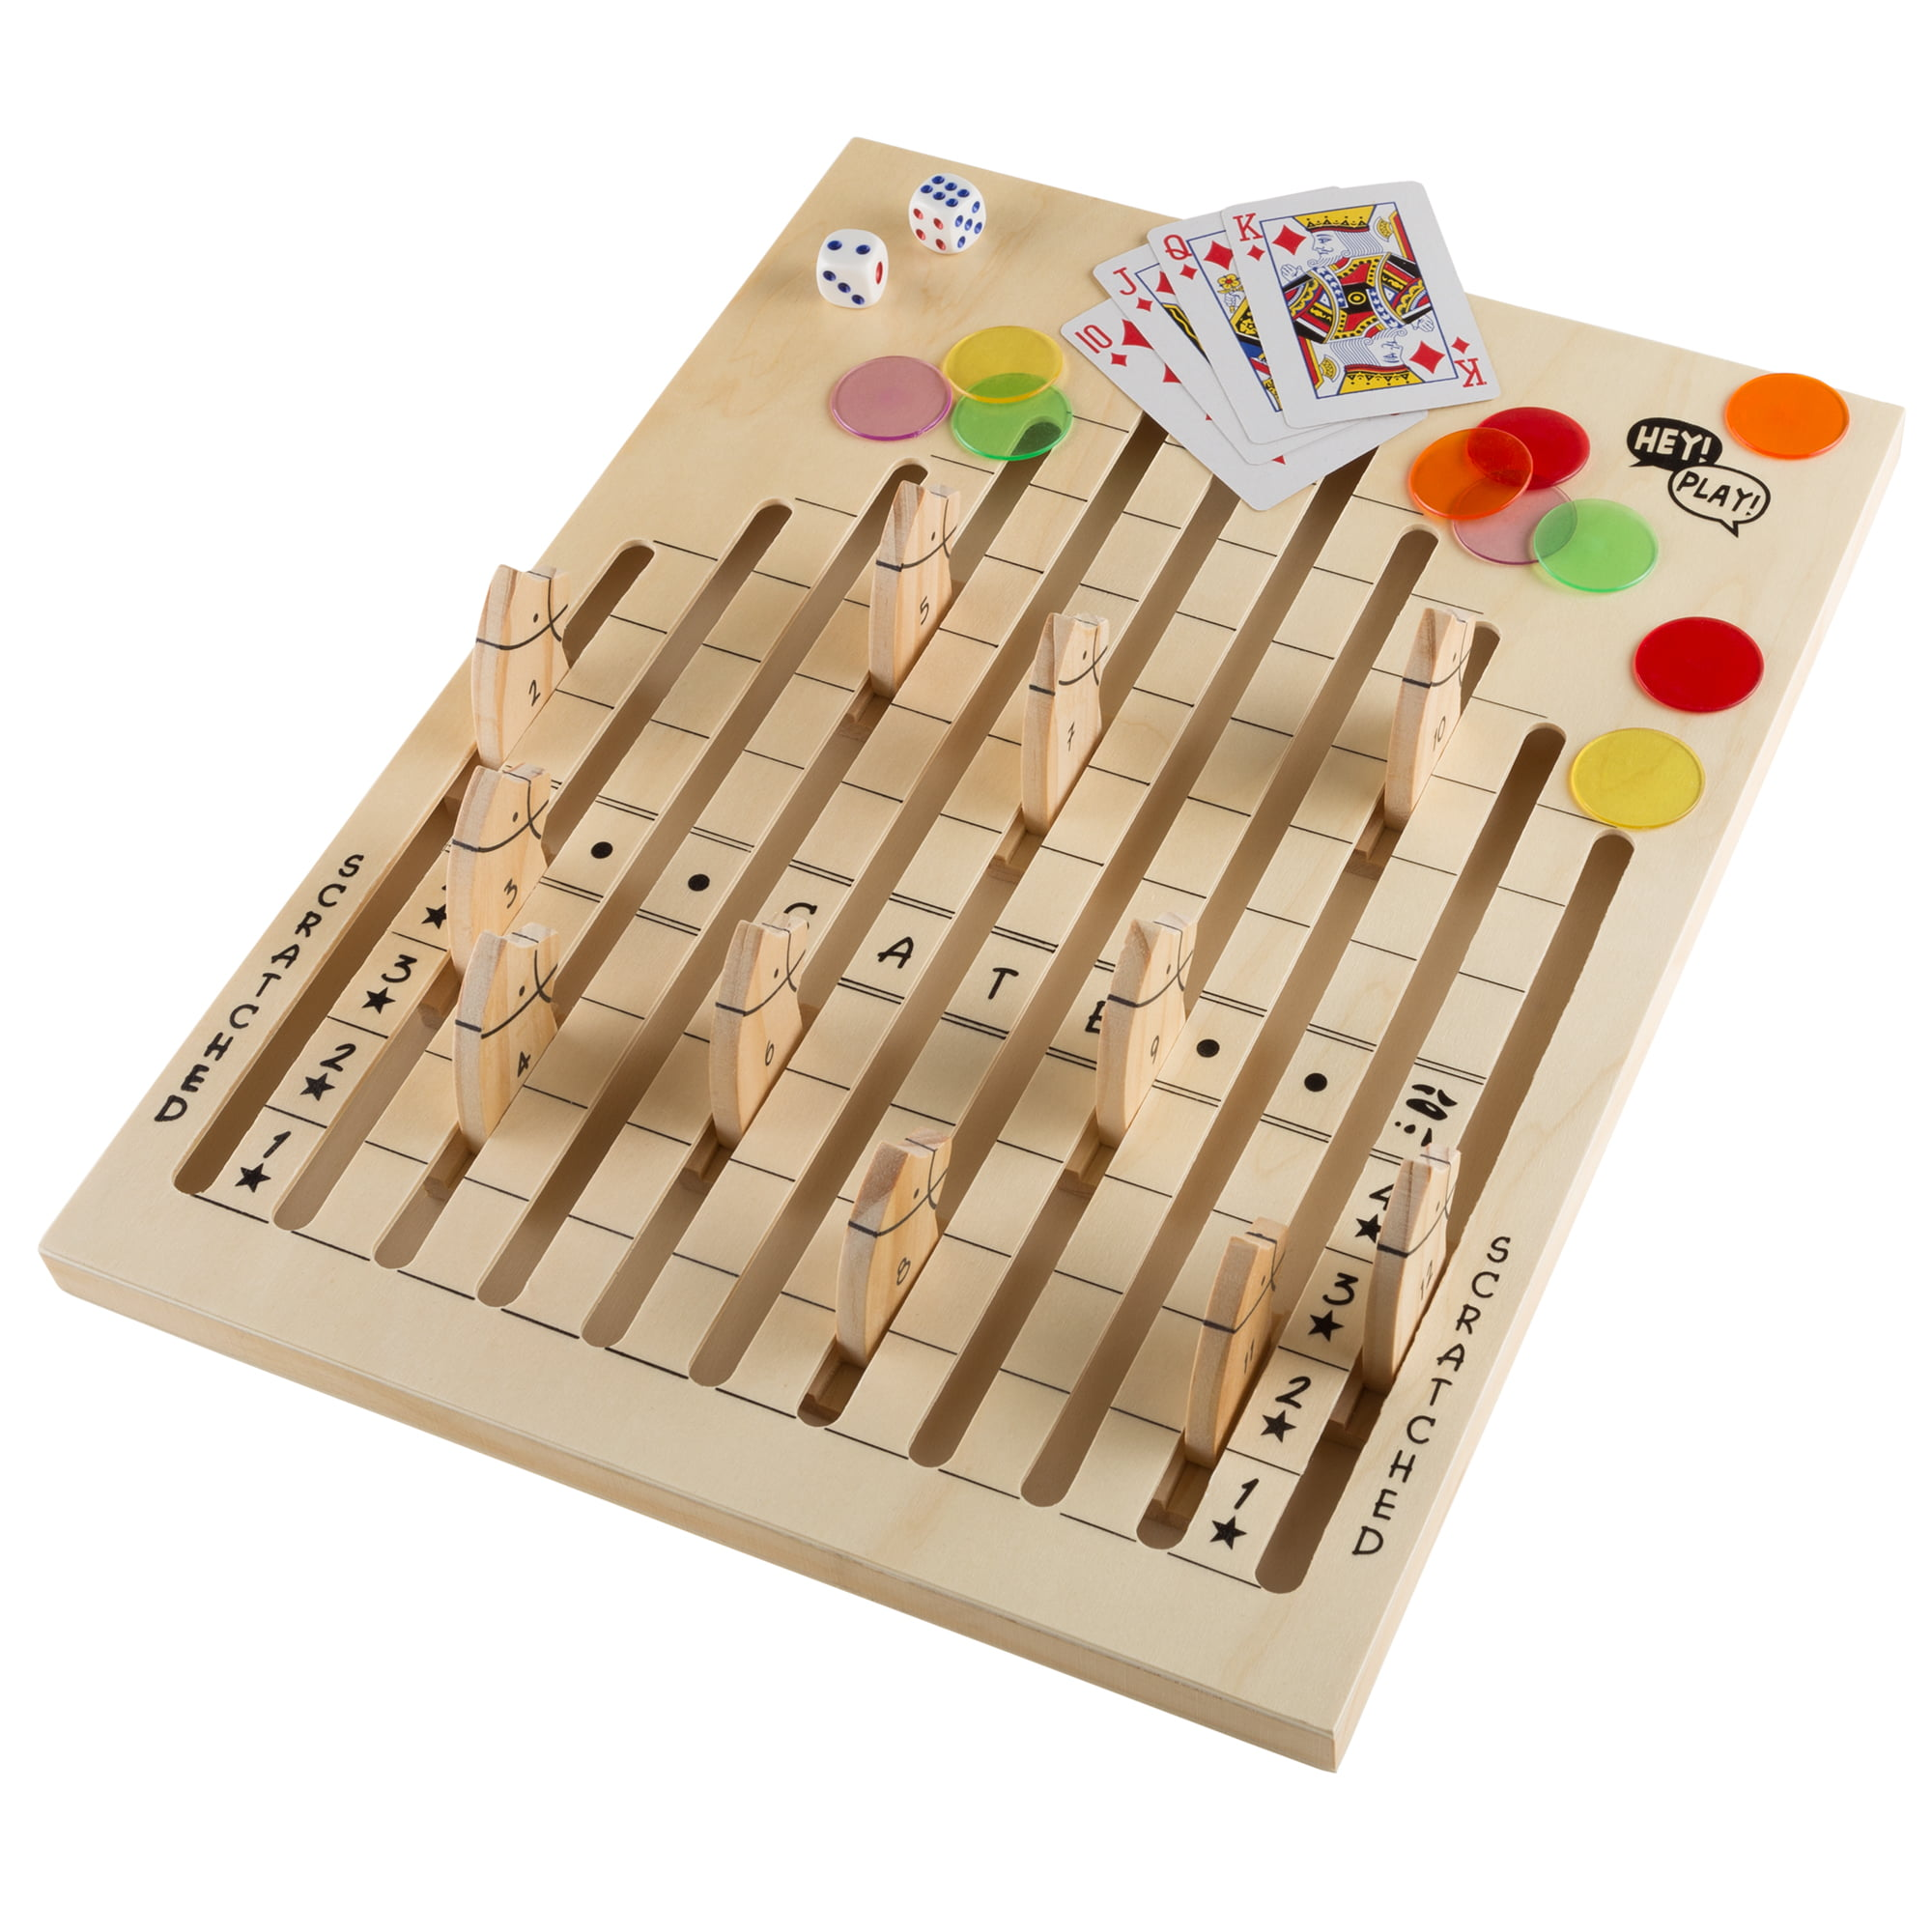 Wooden Horse Race Game With Dice Cards And Chips By Hey Play Walmart Com Walmart Com